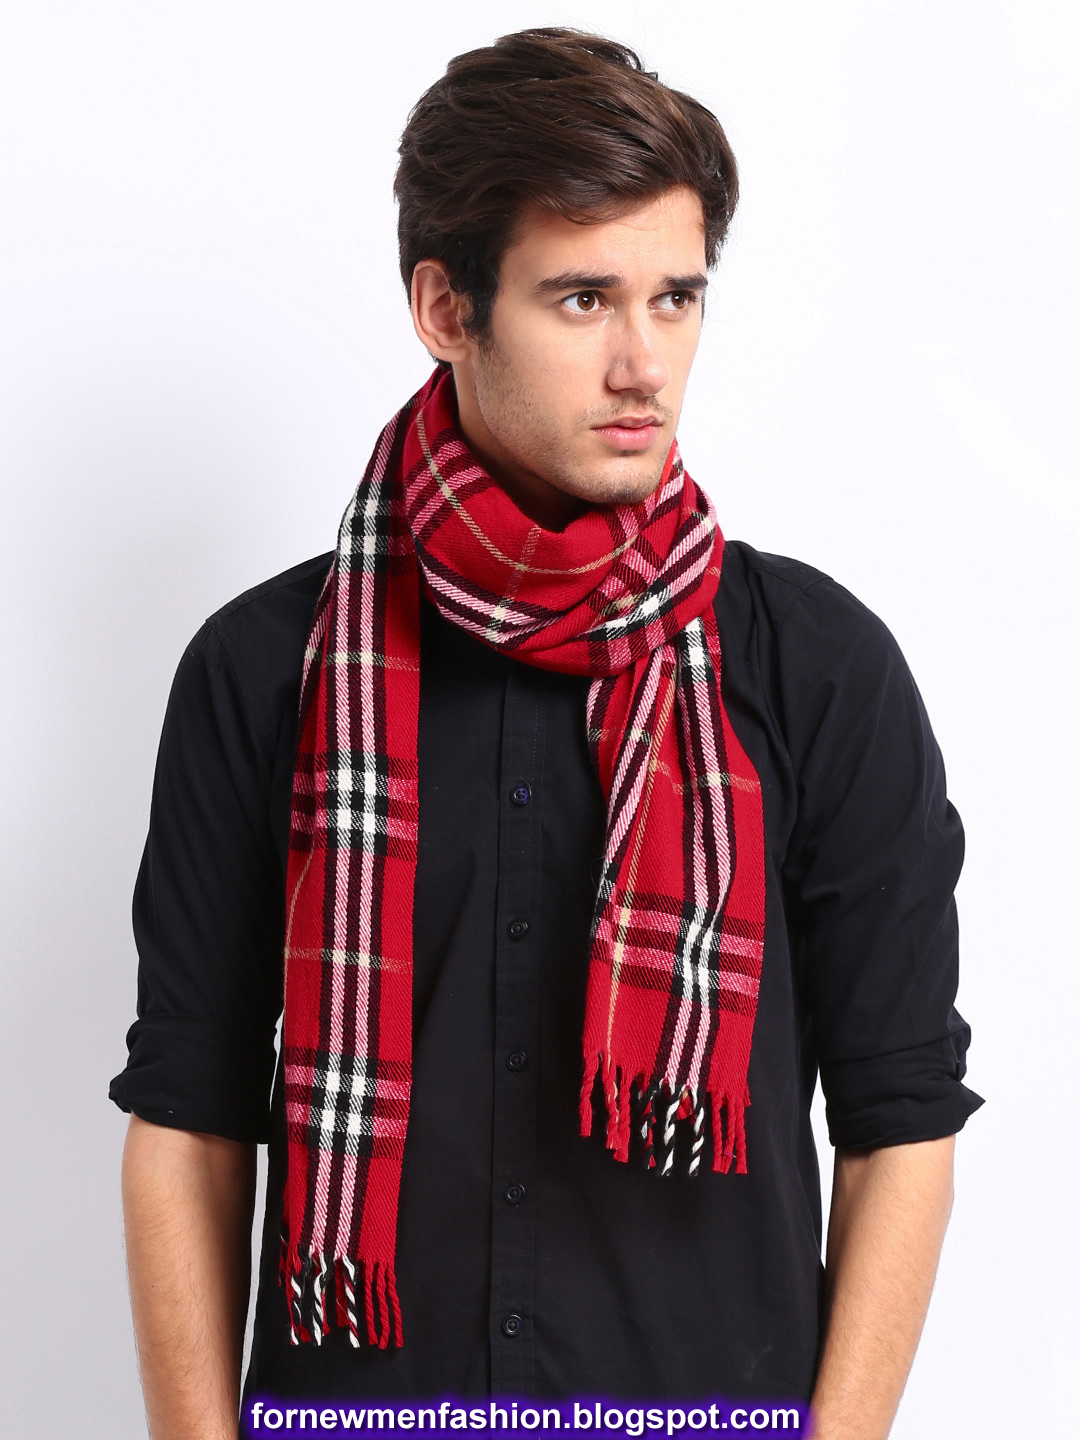 You searched for: men scarf muffler! Etsy is the home to thousands of handmade, vintage, and one-of-a-kind products and gifts related to your search. No matter what you're looking for or where you are in the world, our global marketplace of sellers can help you find unique and affordable options. Let's get started!